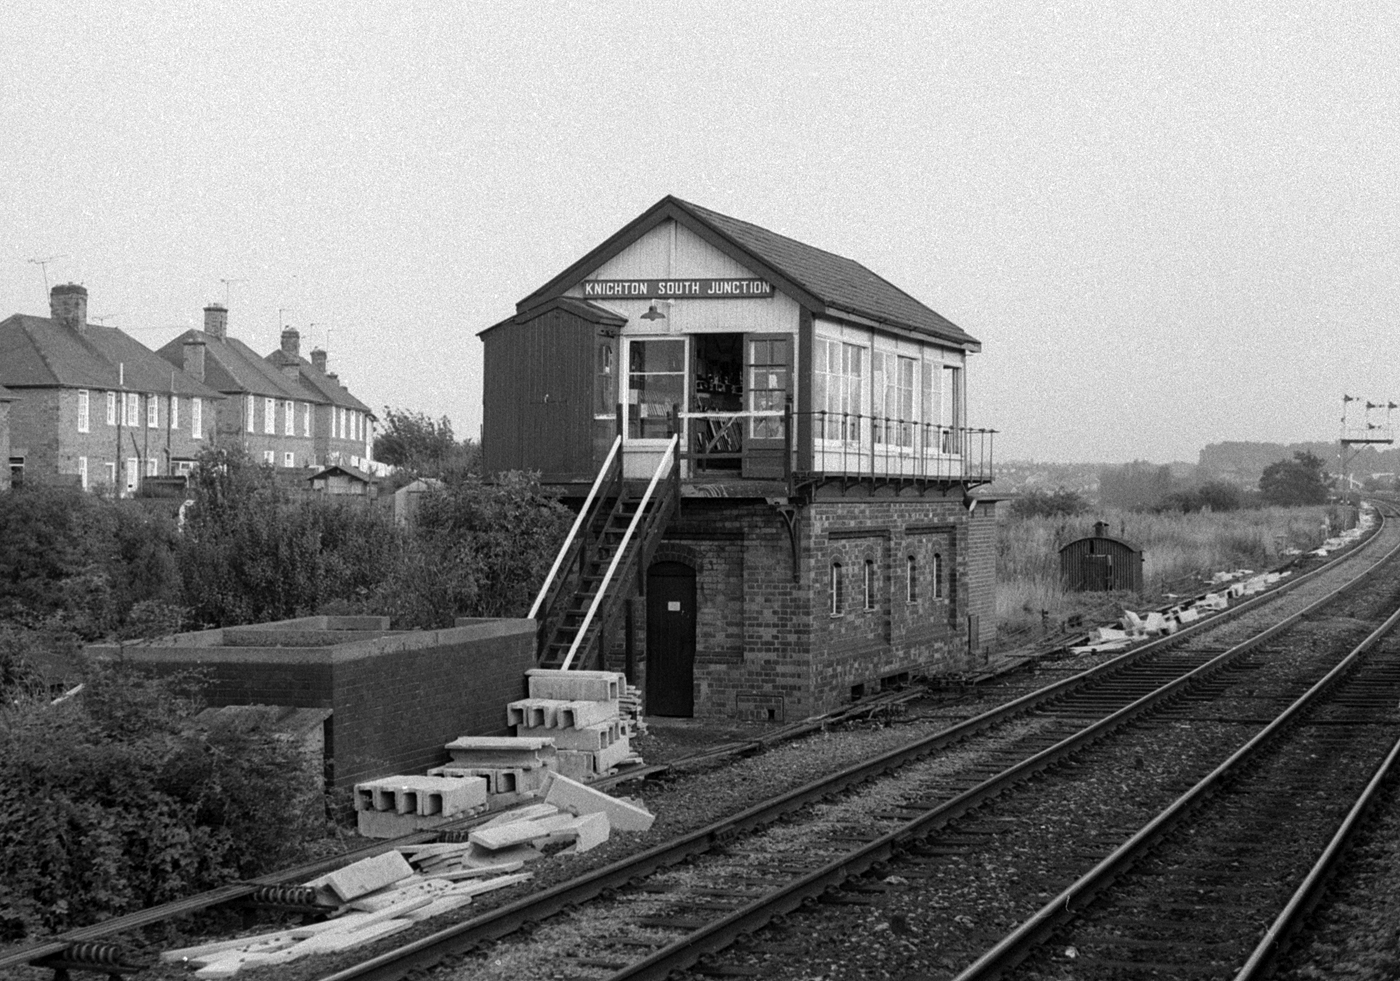 Knighton South Junction signal box